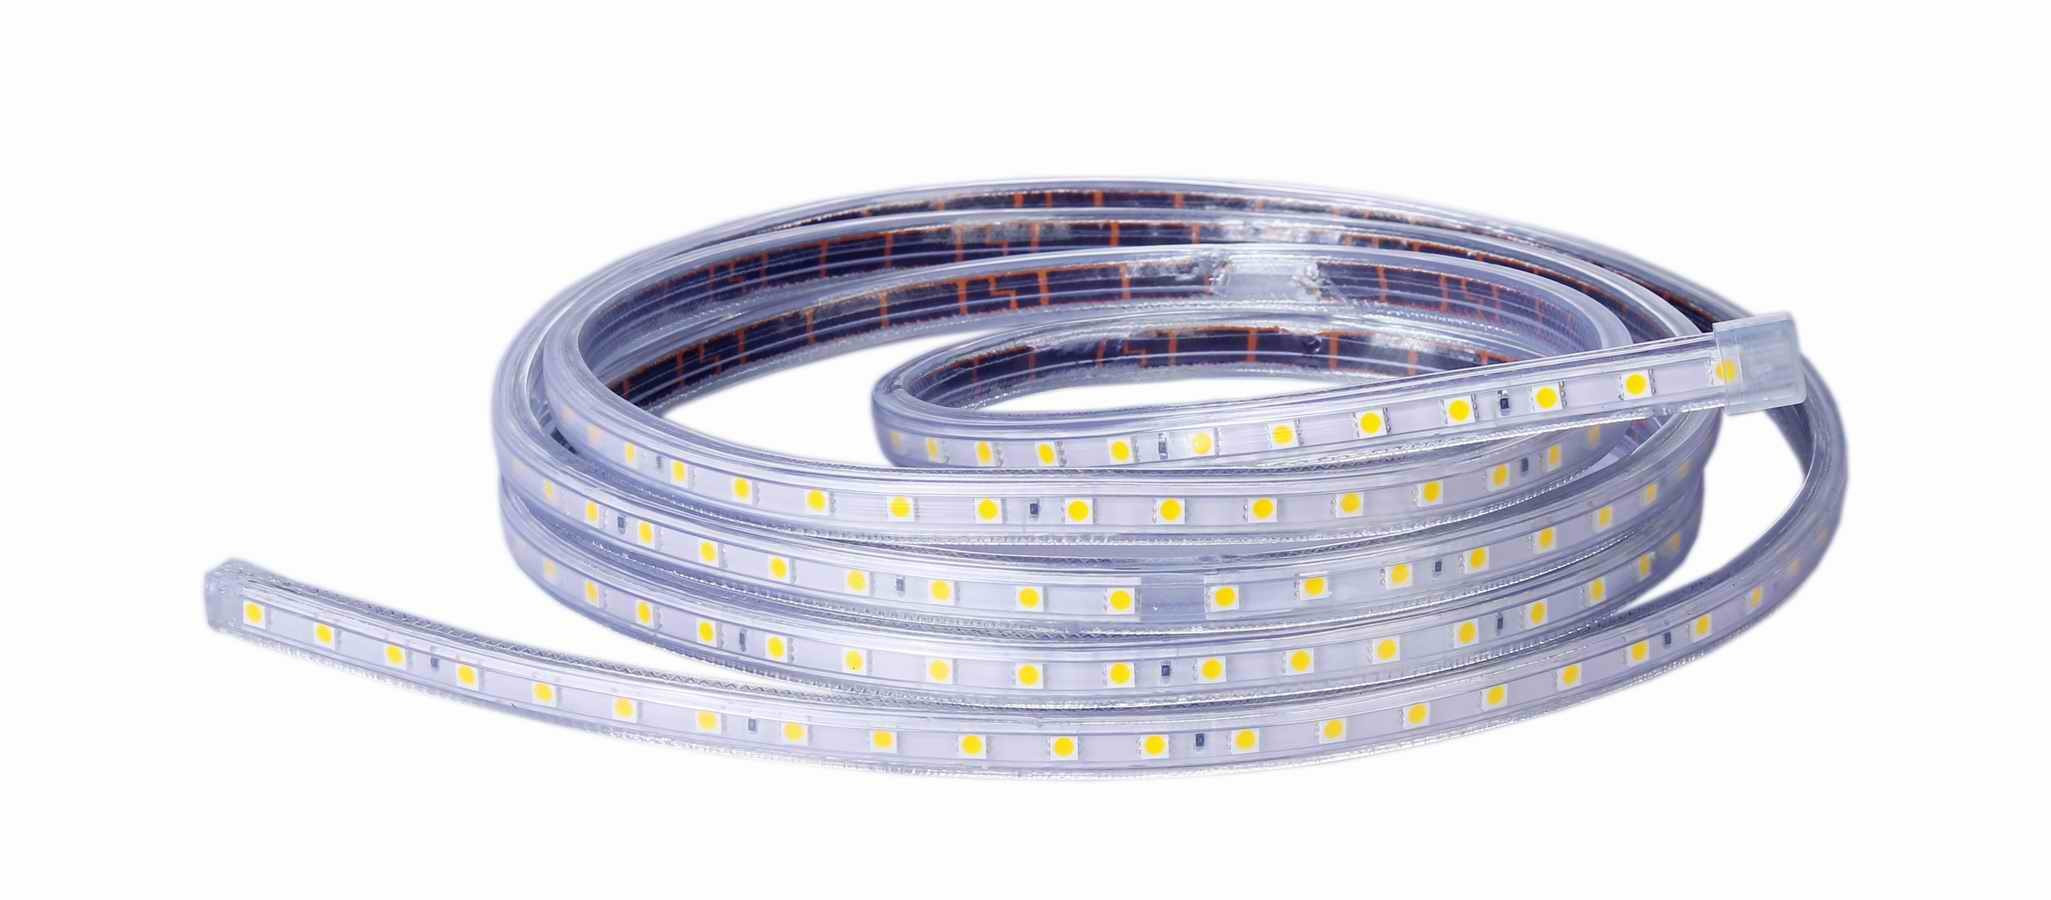 Comprar Tiras De Led Maravilloso Led Flexible Strip Light Smd5050 220v 30led Meter – Led Of Comprar Tiras De Led Contemporáneo El Blog De Portalelectricidad Blog De Material